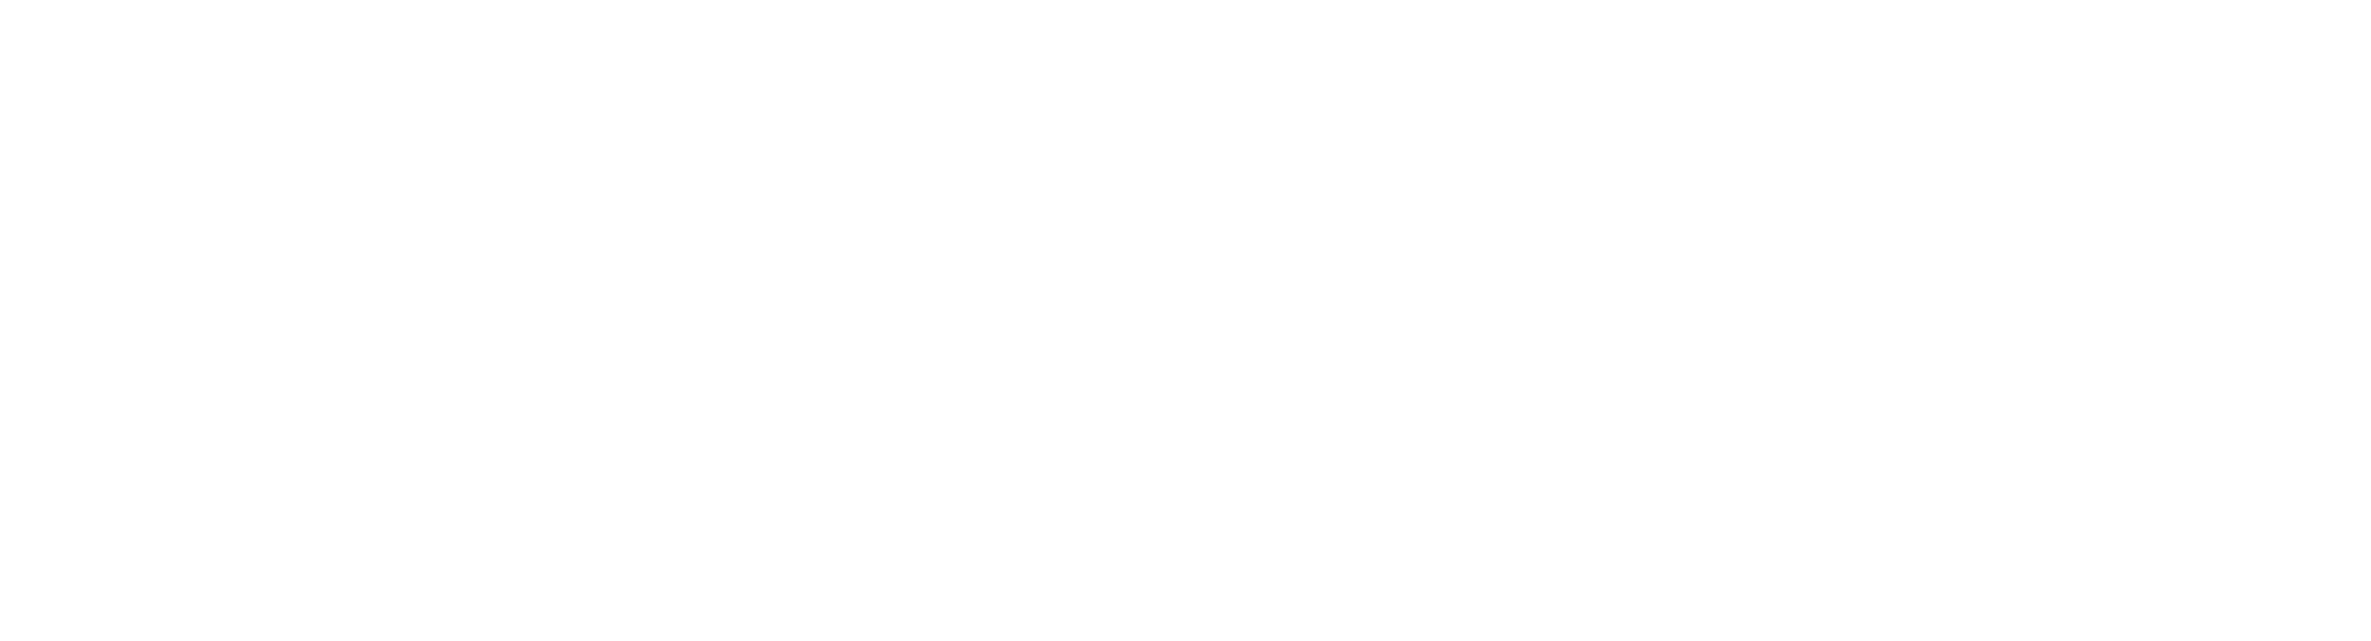 Gianmarco Vichi Photographer logo